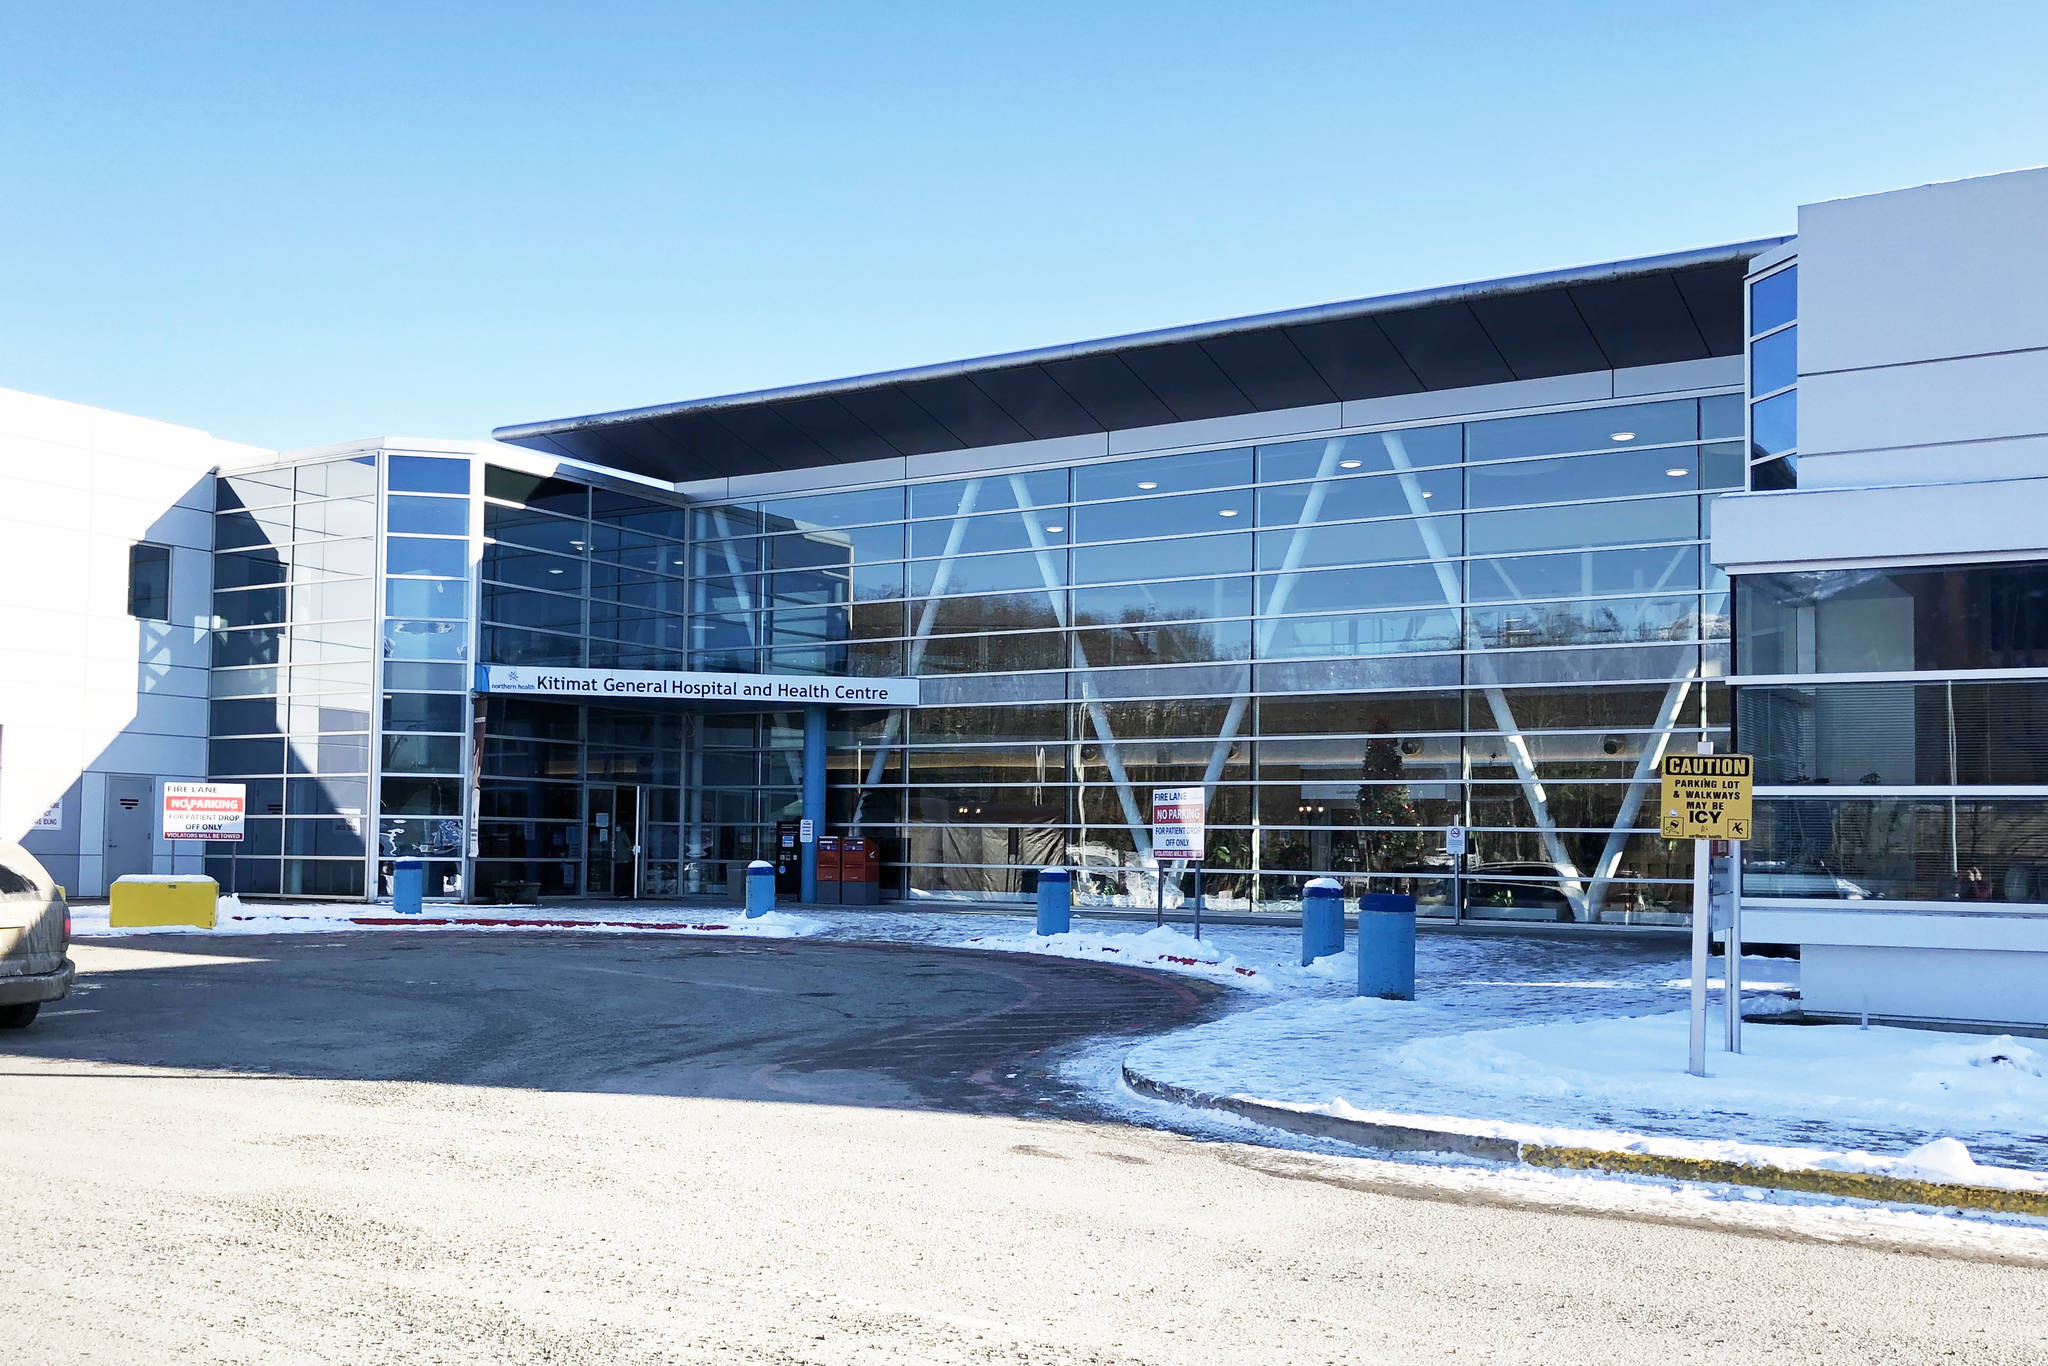 A patient care review is underway at Kitimat General Hospital after allegations a pregnant woman did not receive proper care. (Clare Rayment/Kitimat Northern Sentinel)